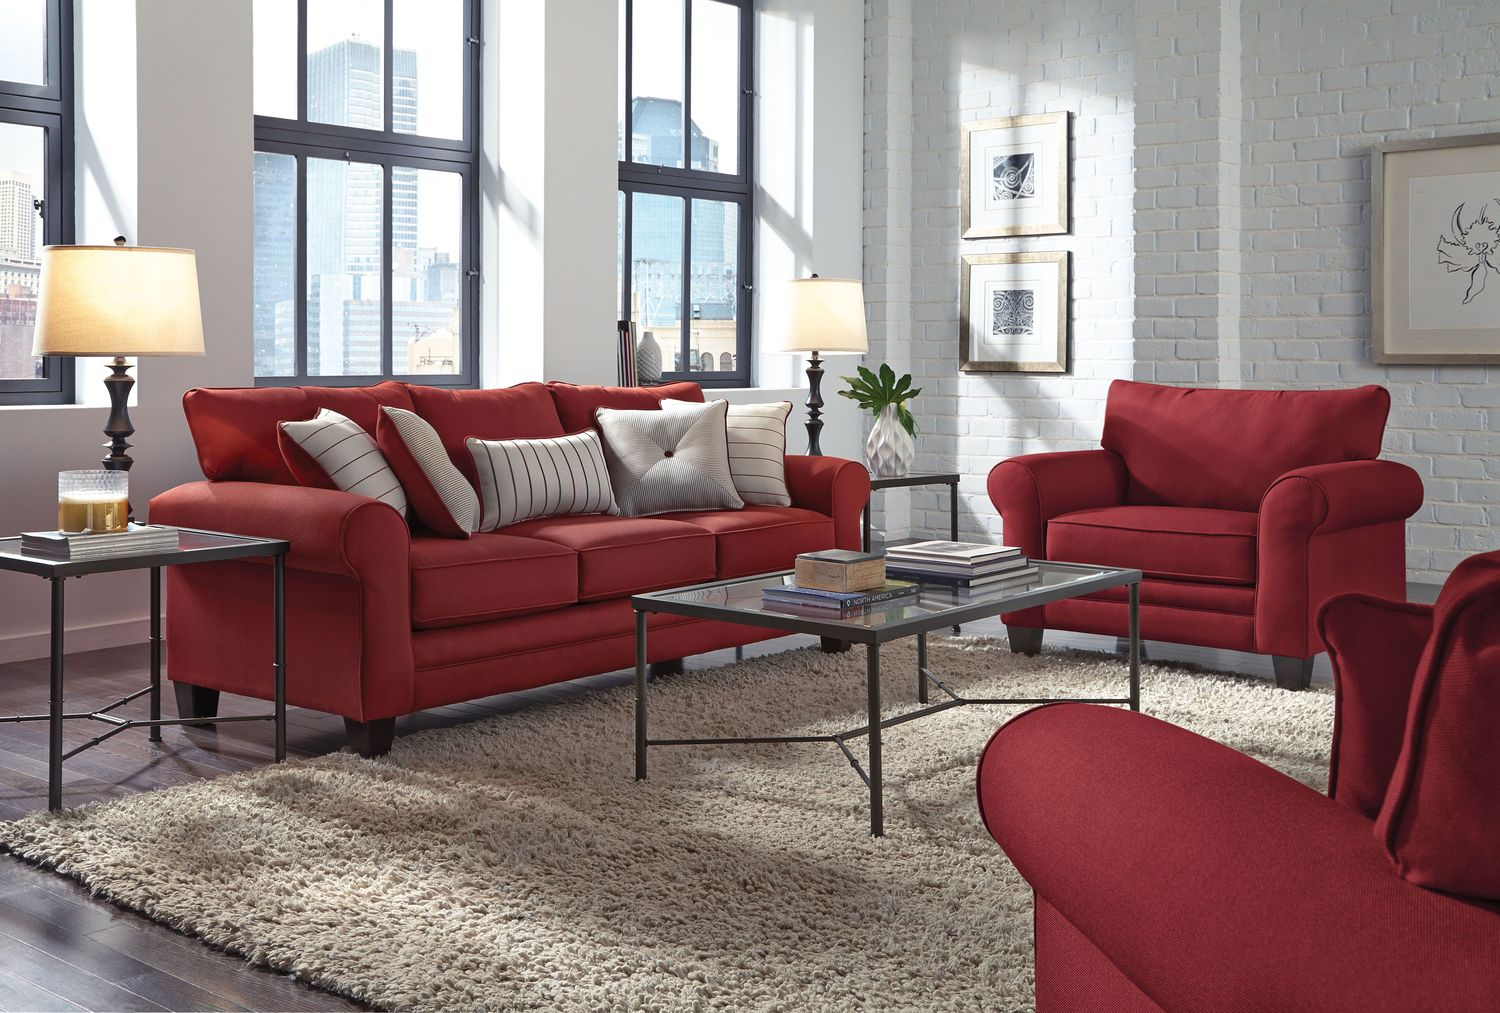 Living room furniture aspire sofa red